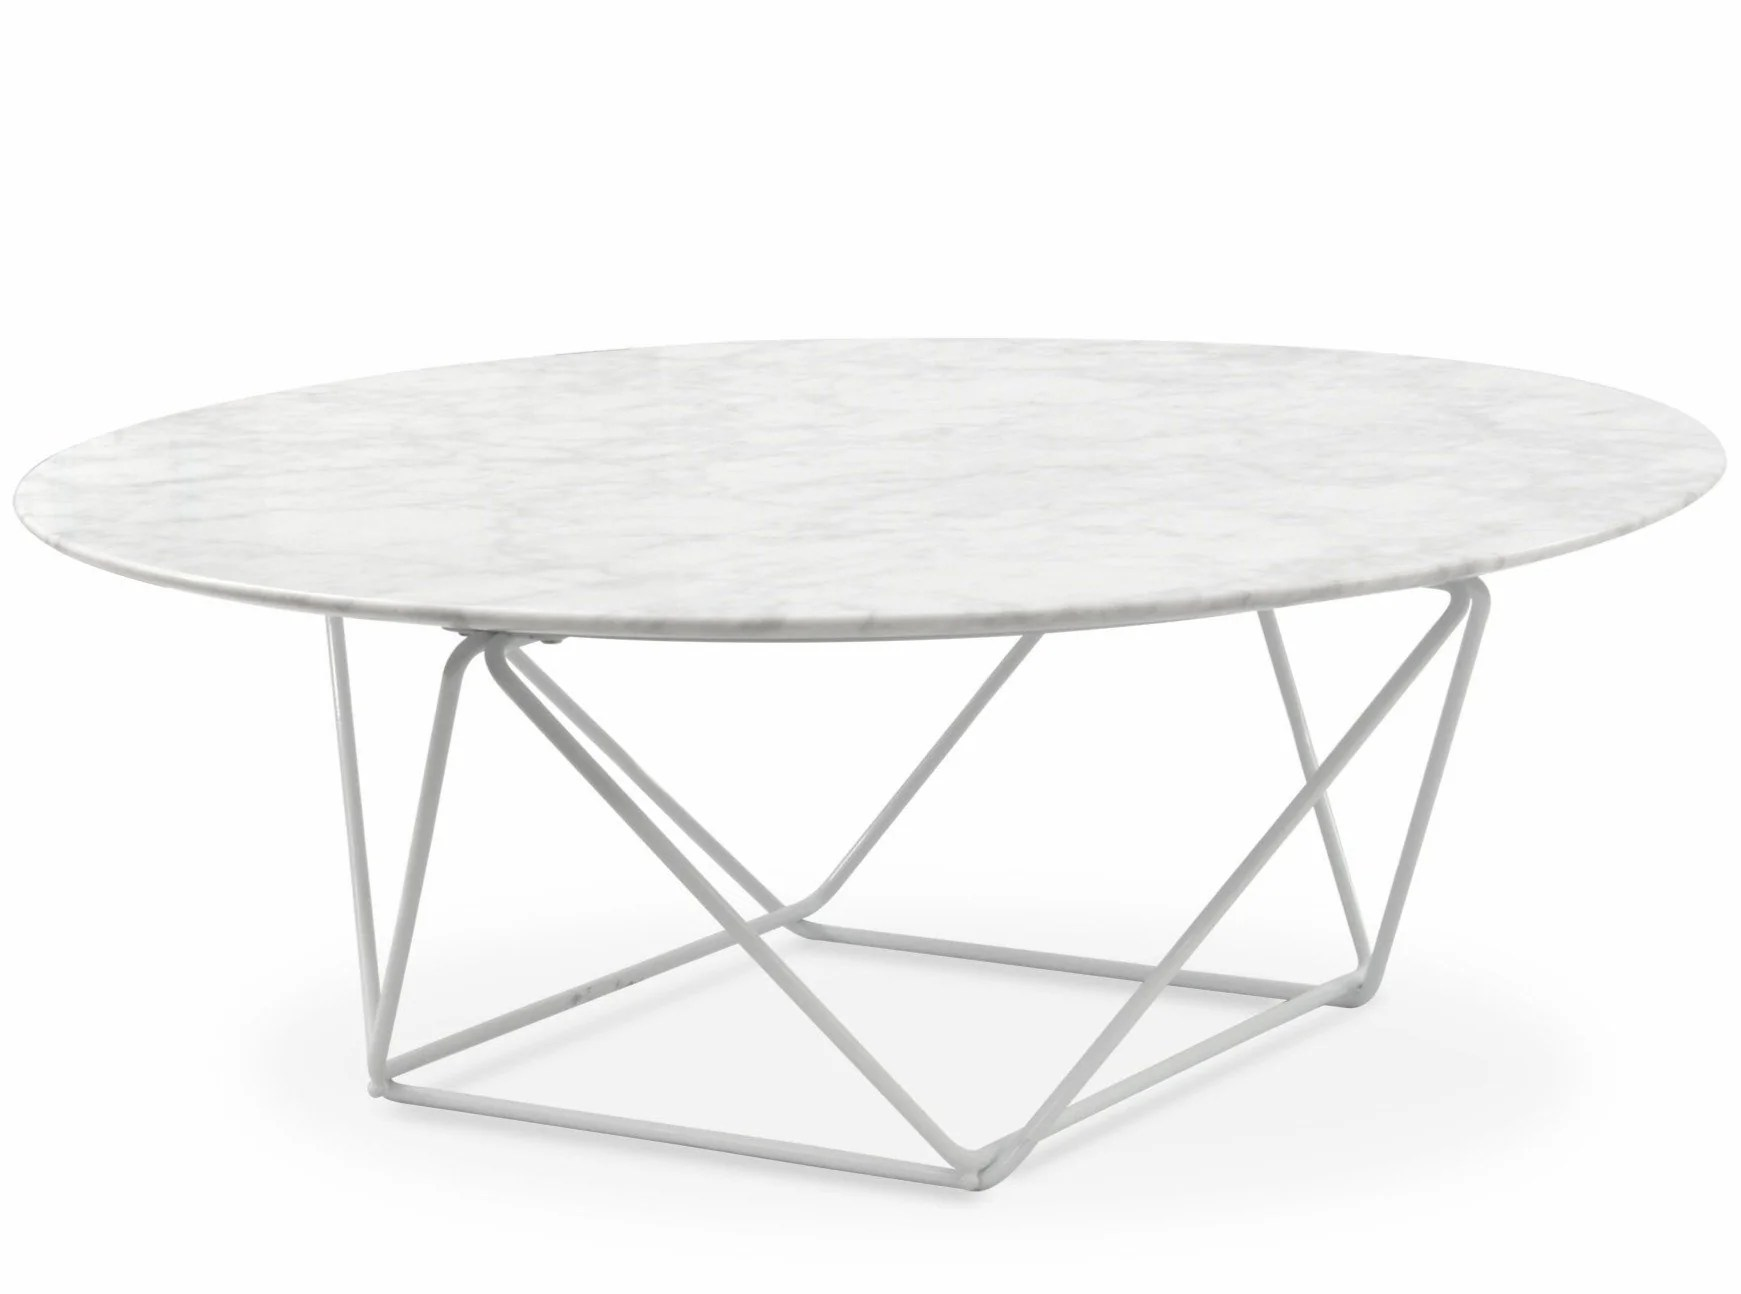 Robin 100cm Round Marble Coffee Table Whit Interior Secrets